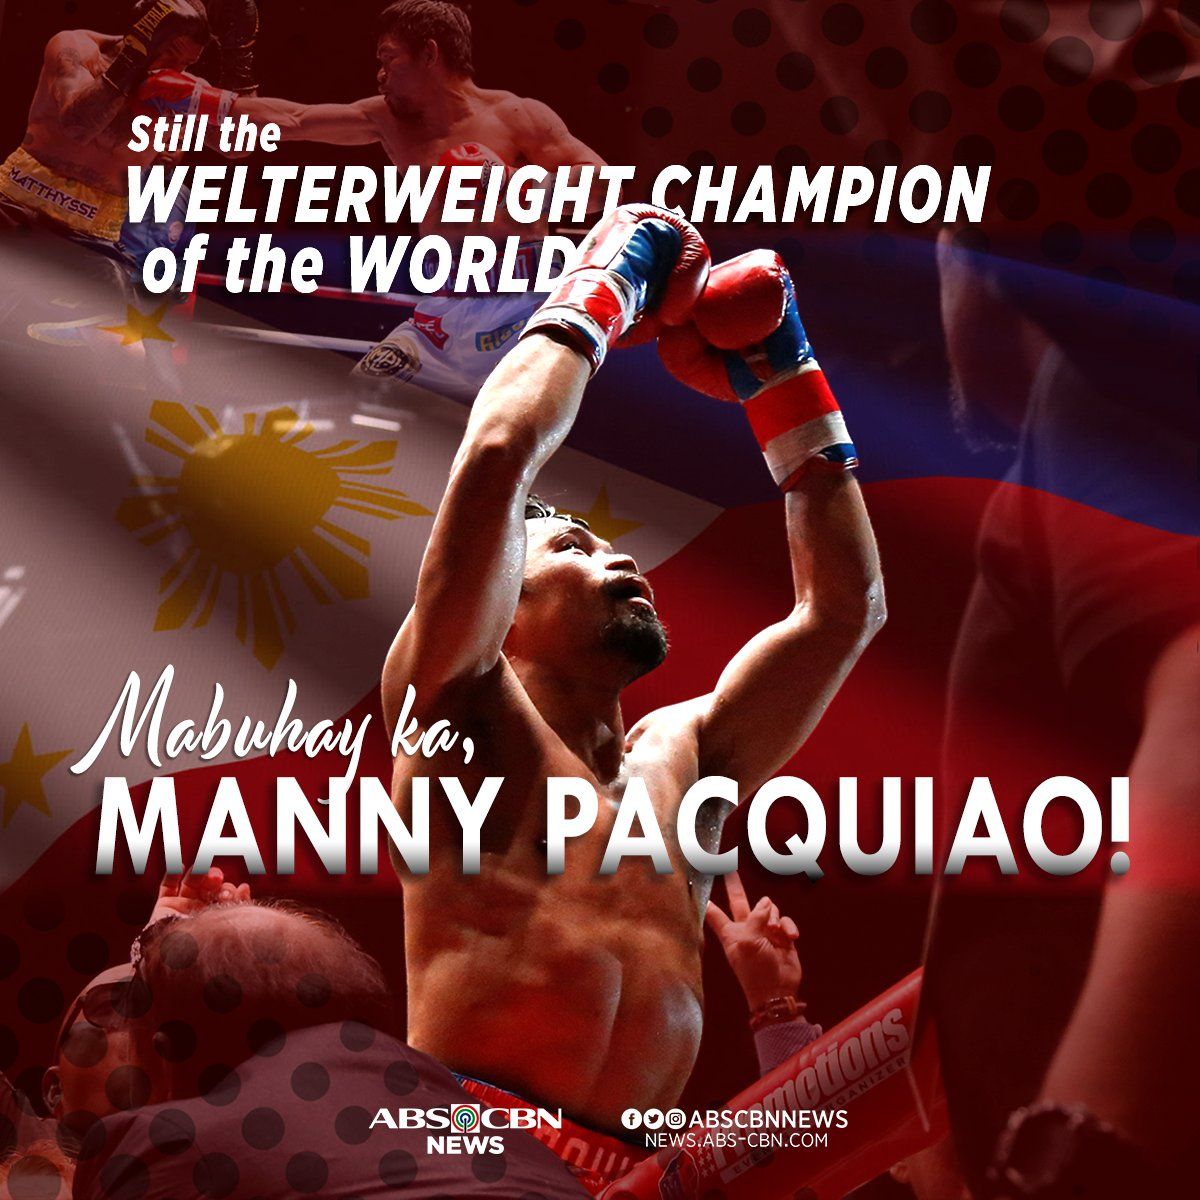 OLD BUT GOLD. The welterweight belt stays with Manny 'Pacman' Pacquiao as he beats Adrien Broner convincingly in Las Vegas. #PacquiaoBroner